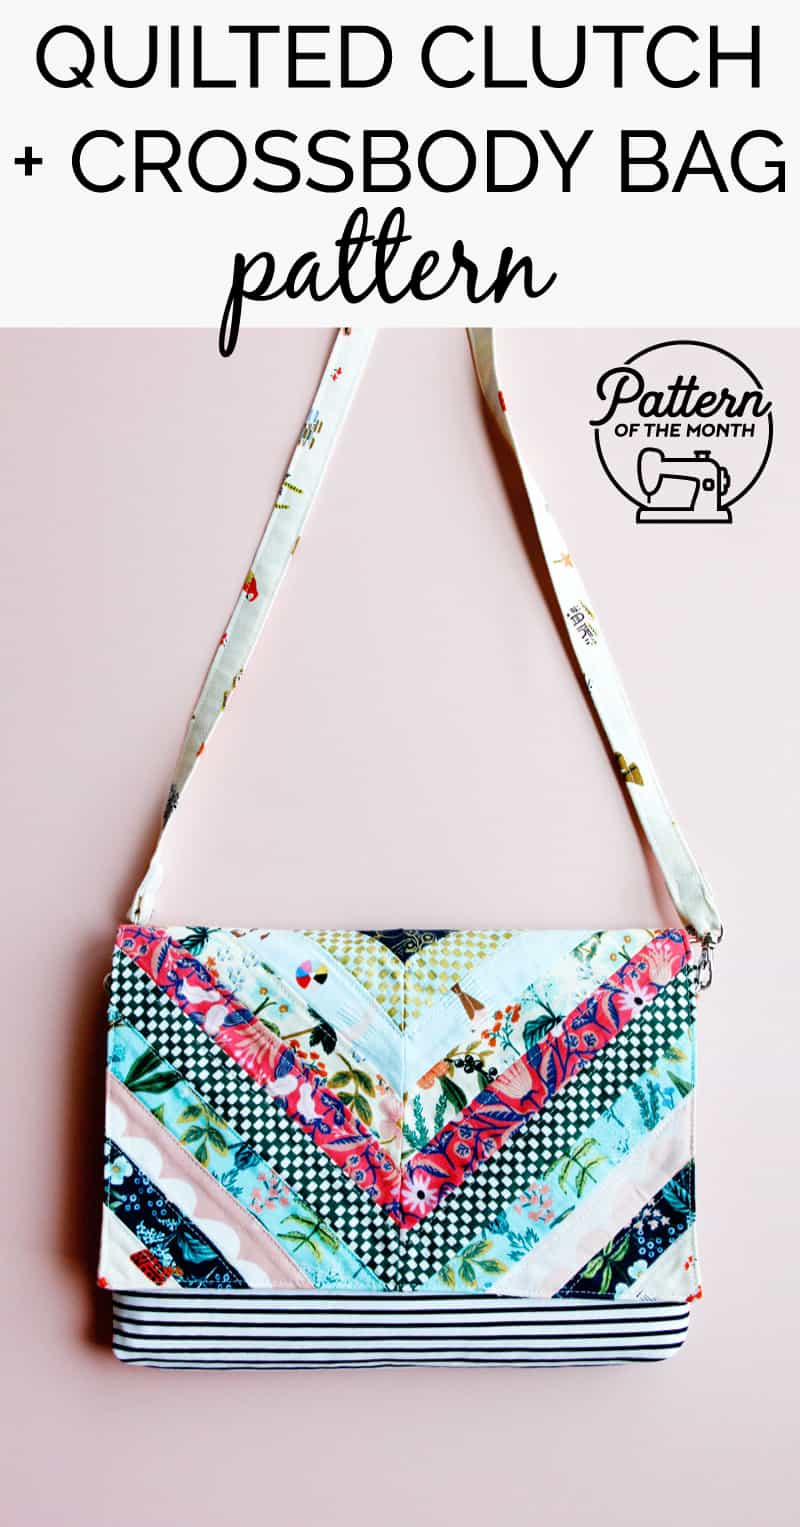 Bag Pattern of the Month